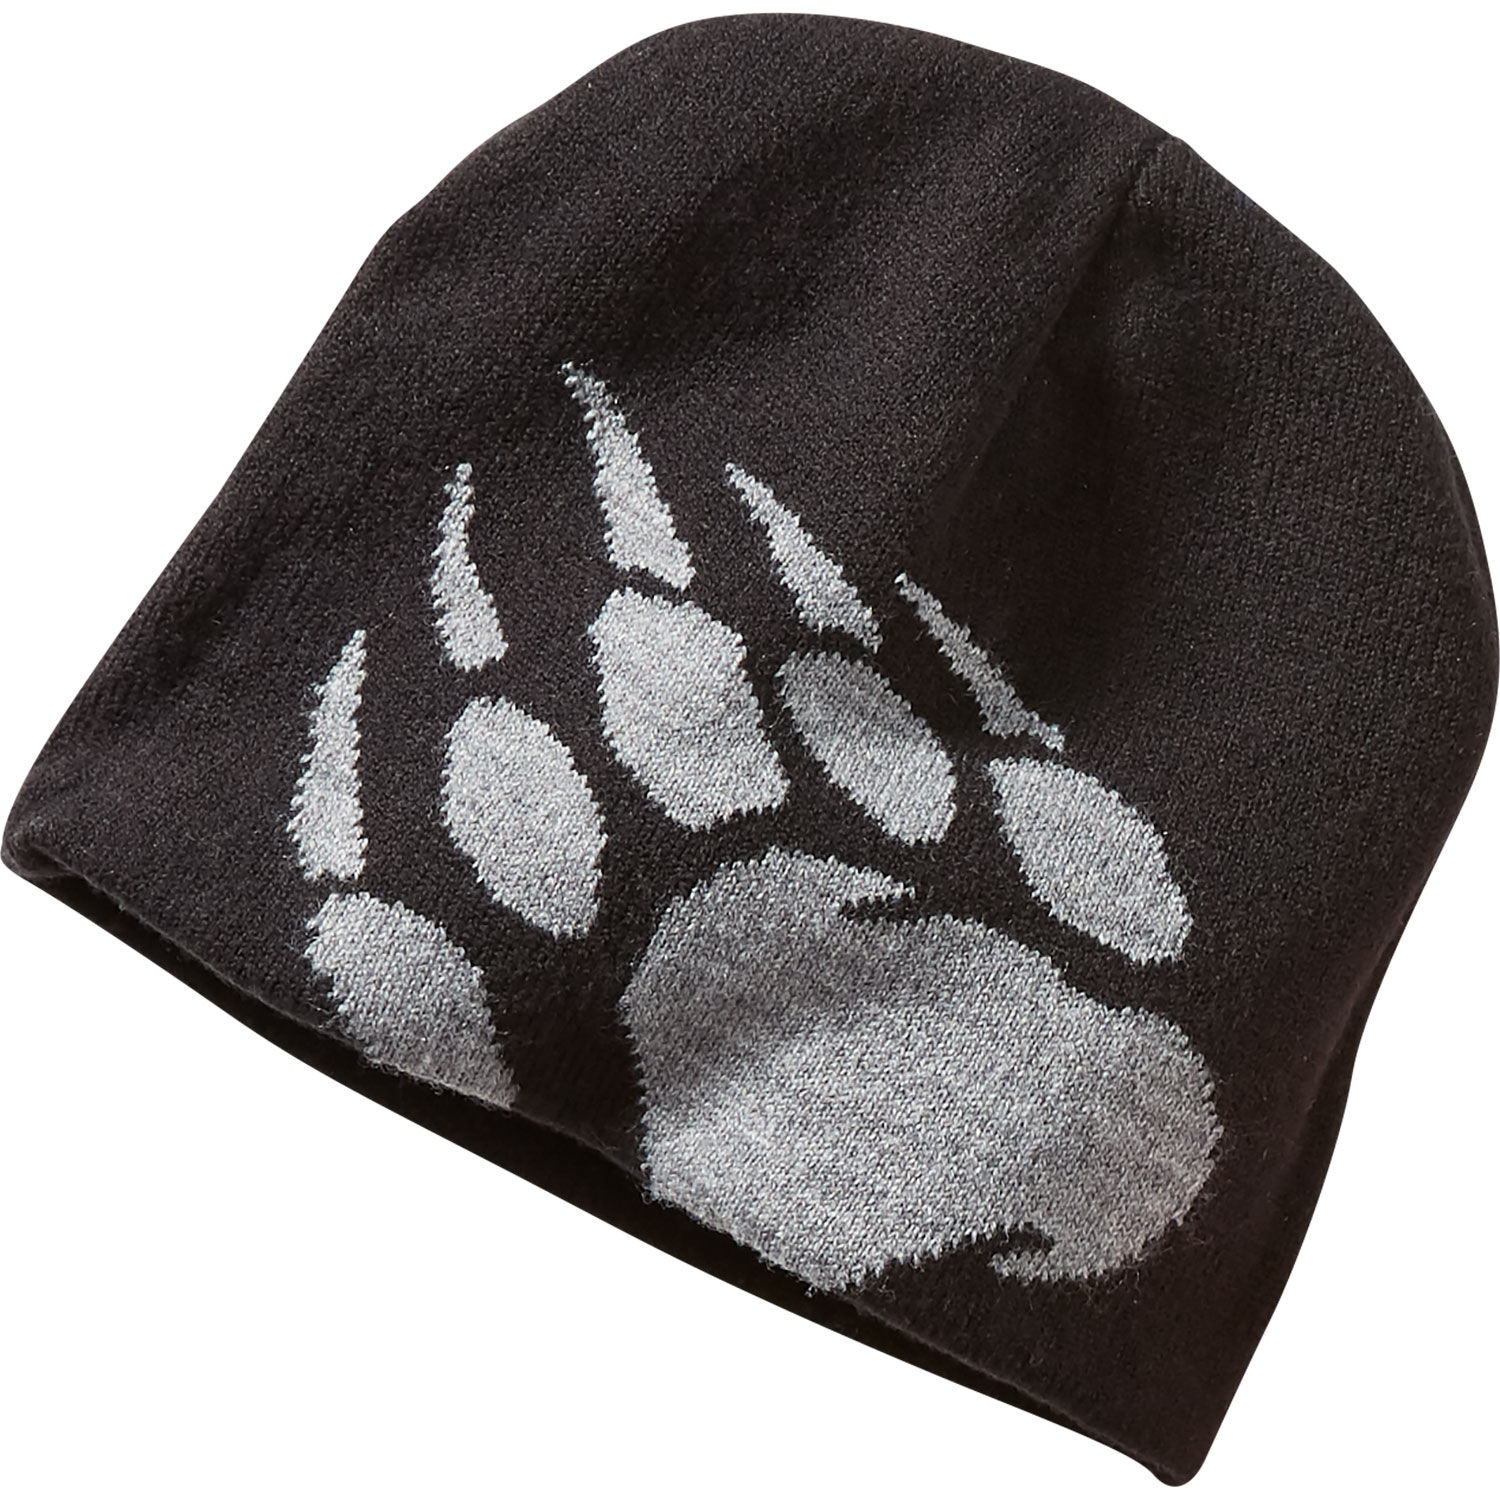 Sorry for What I Said While Gaming Skull Caps Beanie Hat for Mens Black